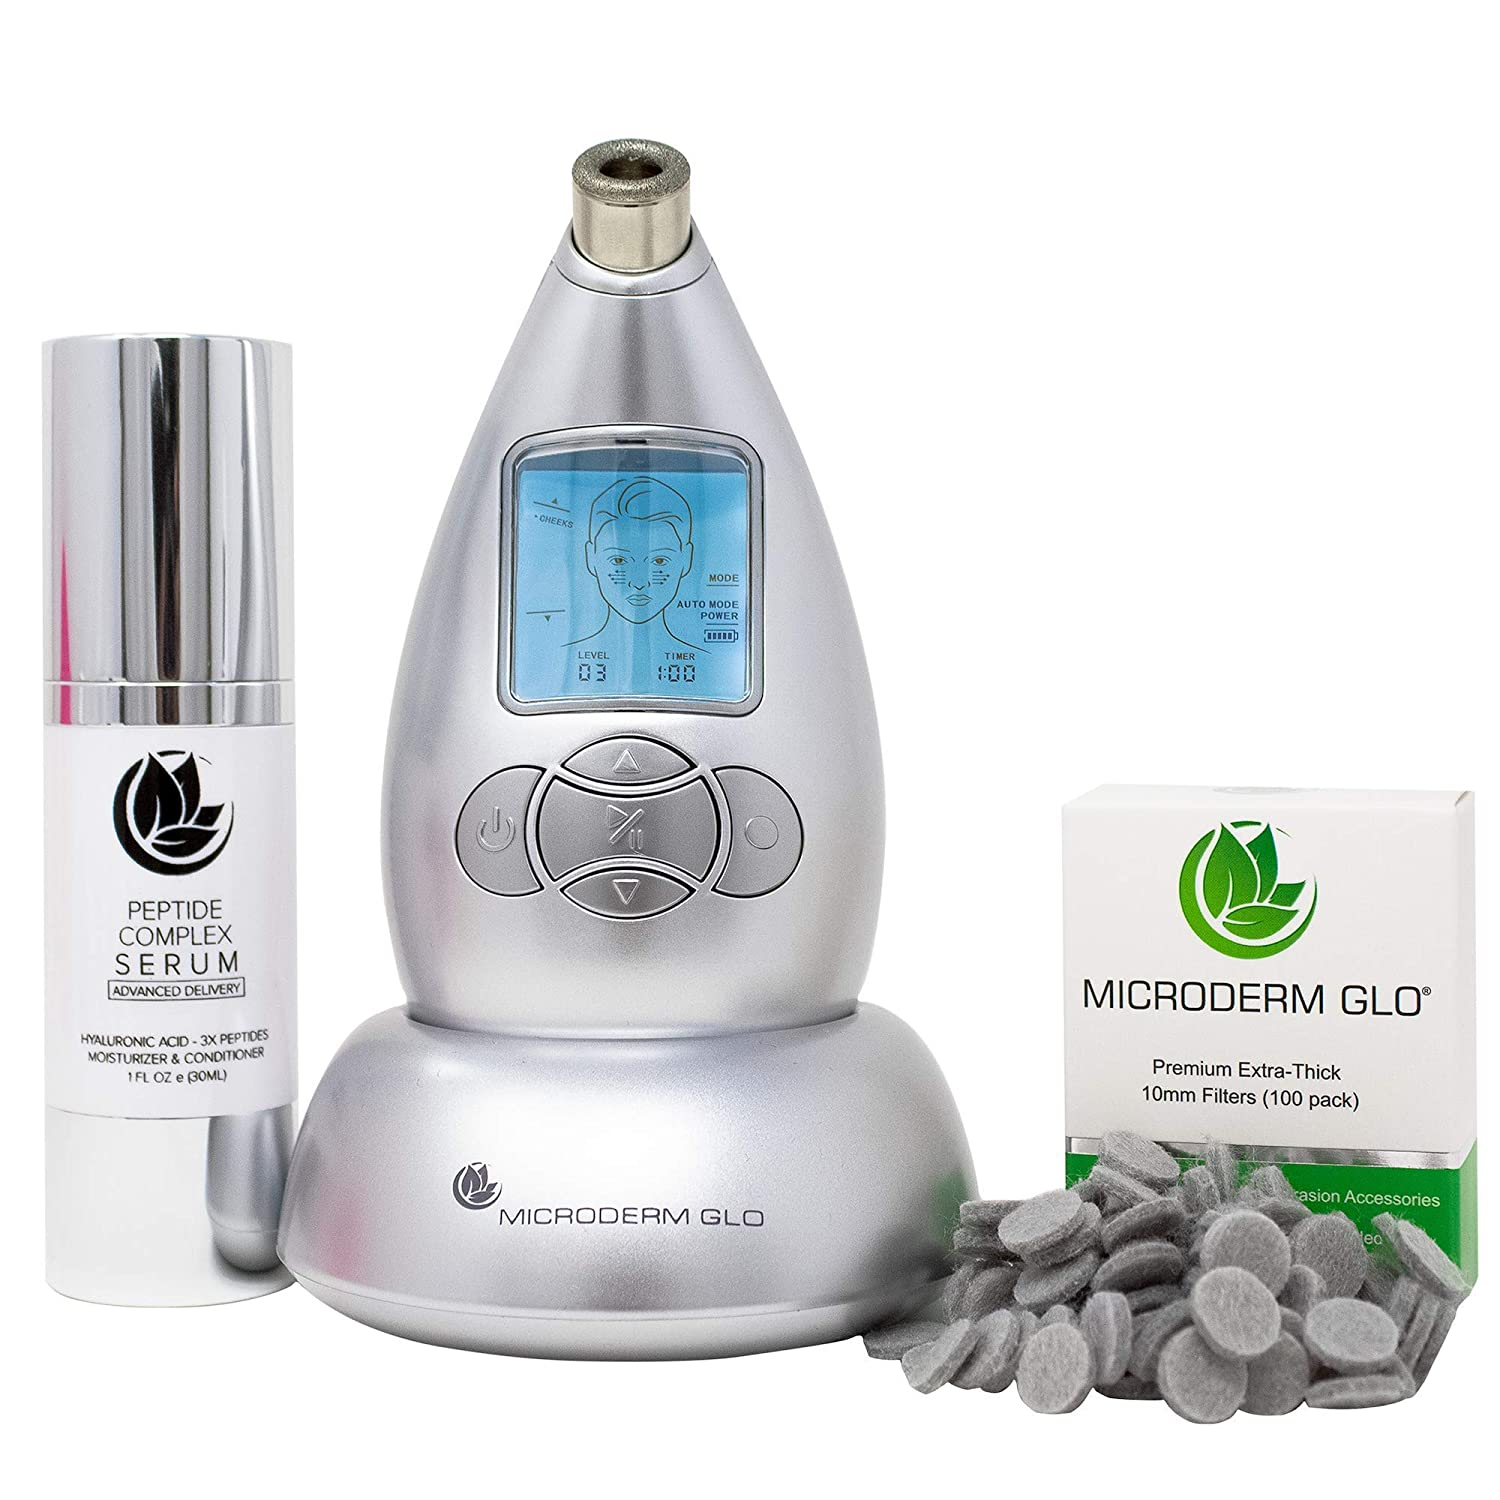 Microderm GLO Skincare Premium Bundle Includes Diamond Microdermabrasion System, 10mm Filters 100 pack & Peptide Complex Serum. Perfect Anti Aging Treatment Kit